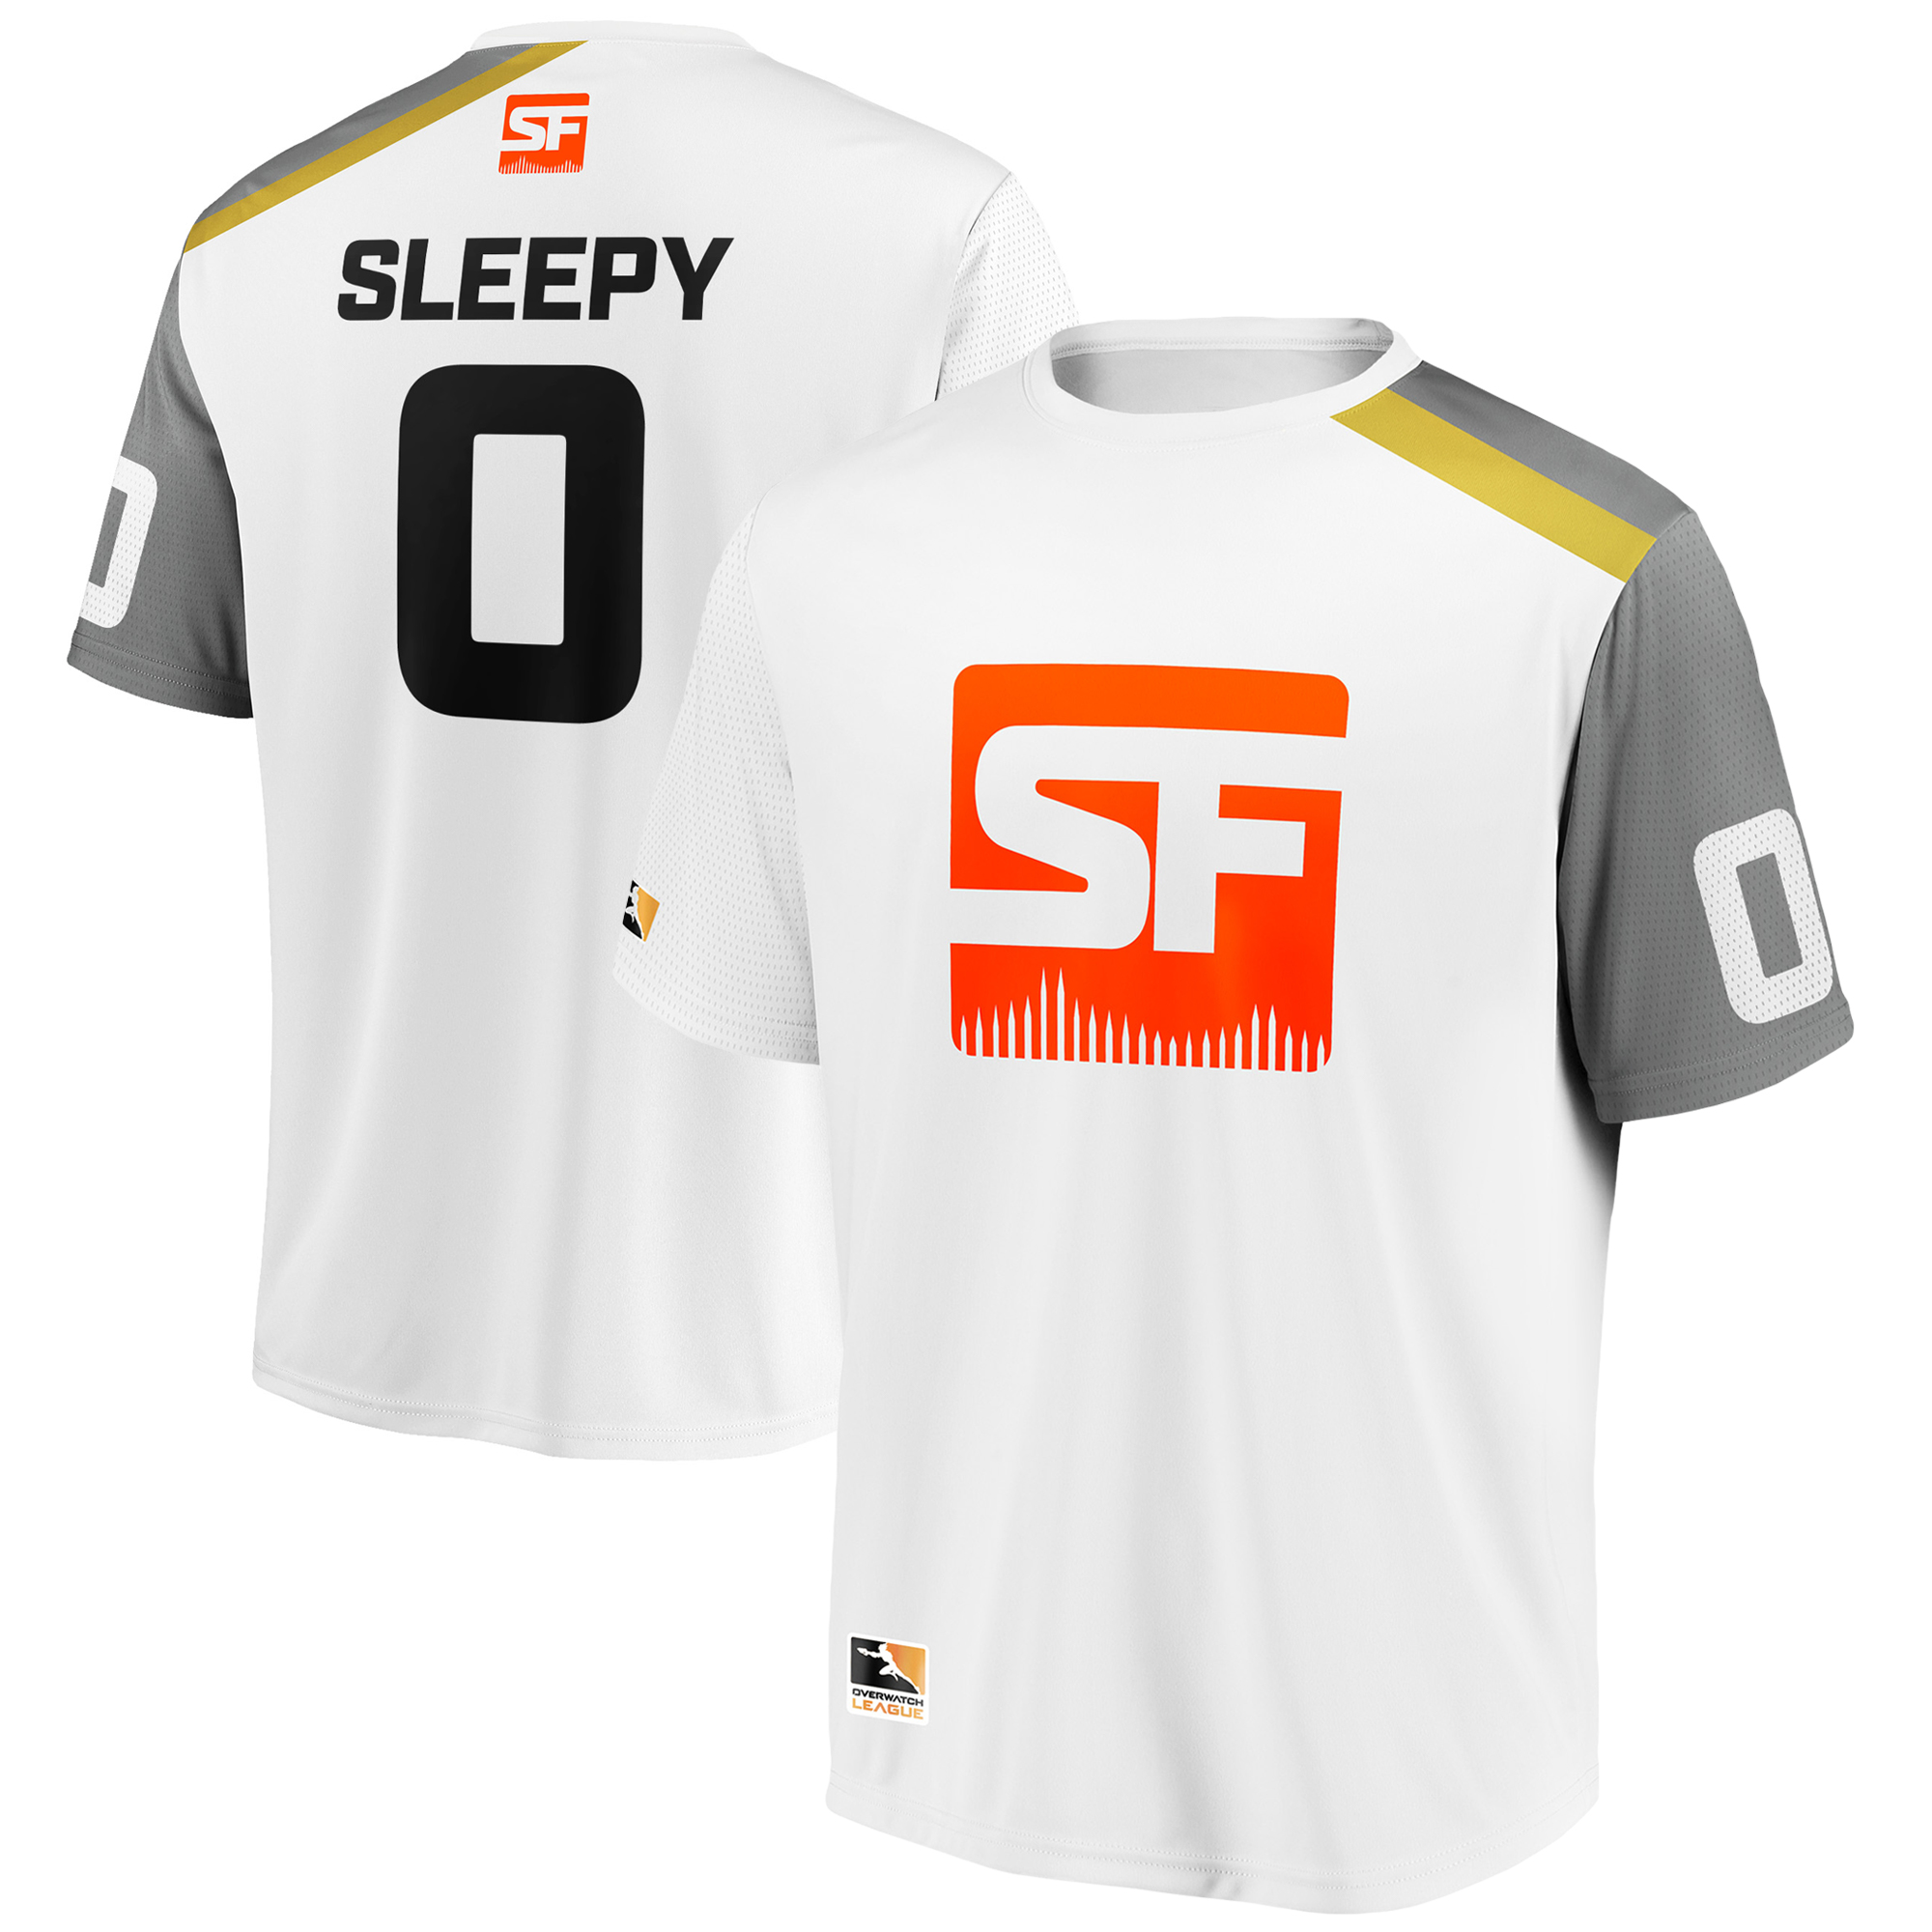 sleepy San Francisco Shock Overwatch League Replica Away Jersey - White